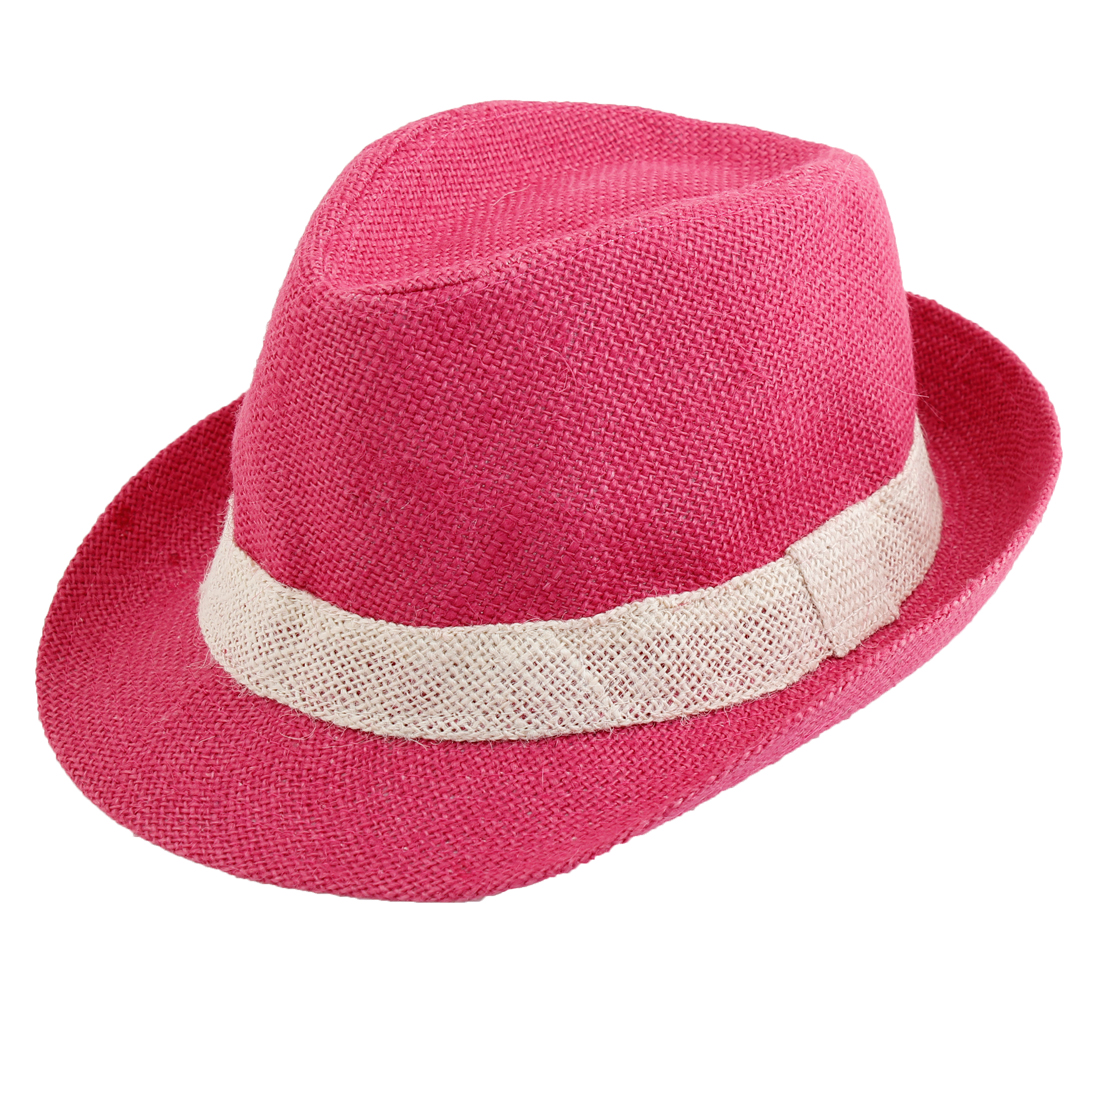 Head Decor Round Fedora Rolled Brim Cap Stroll Hat Red for Lady